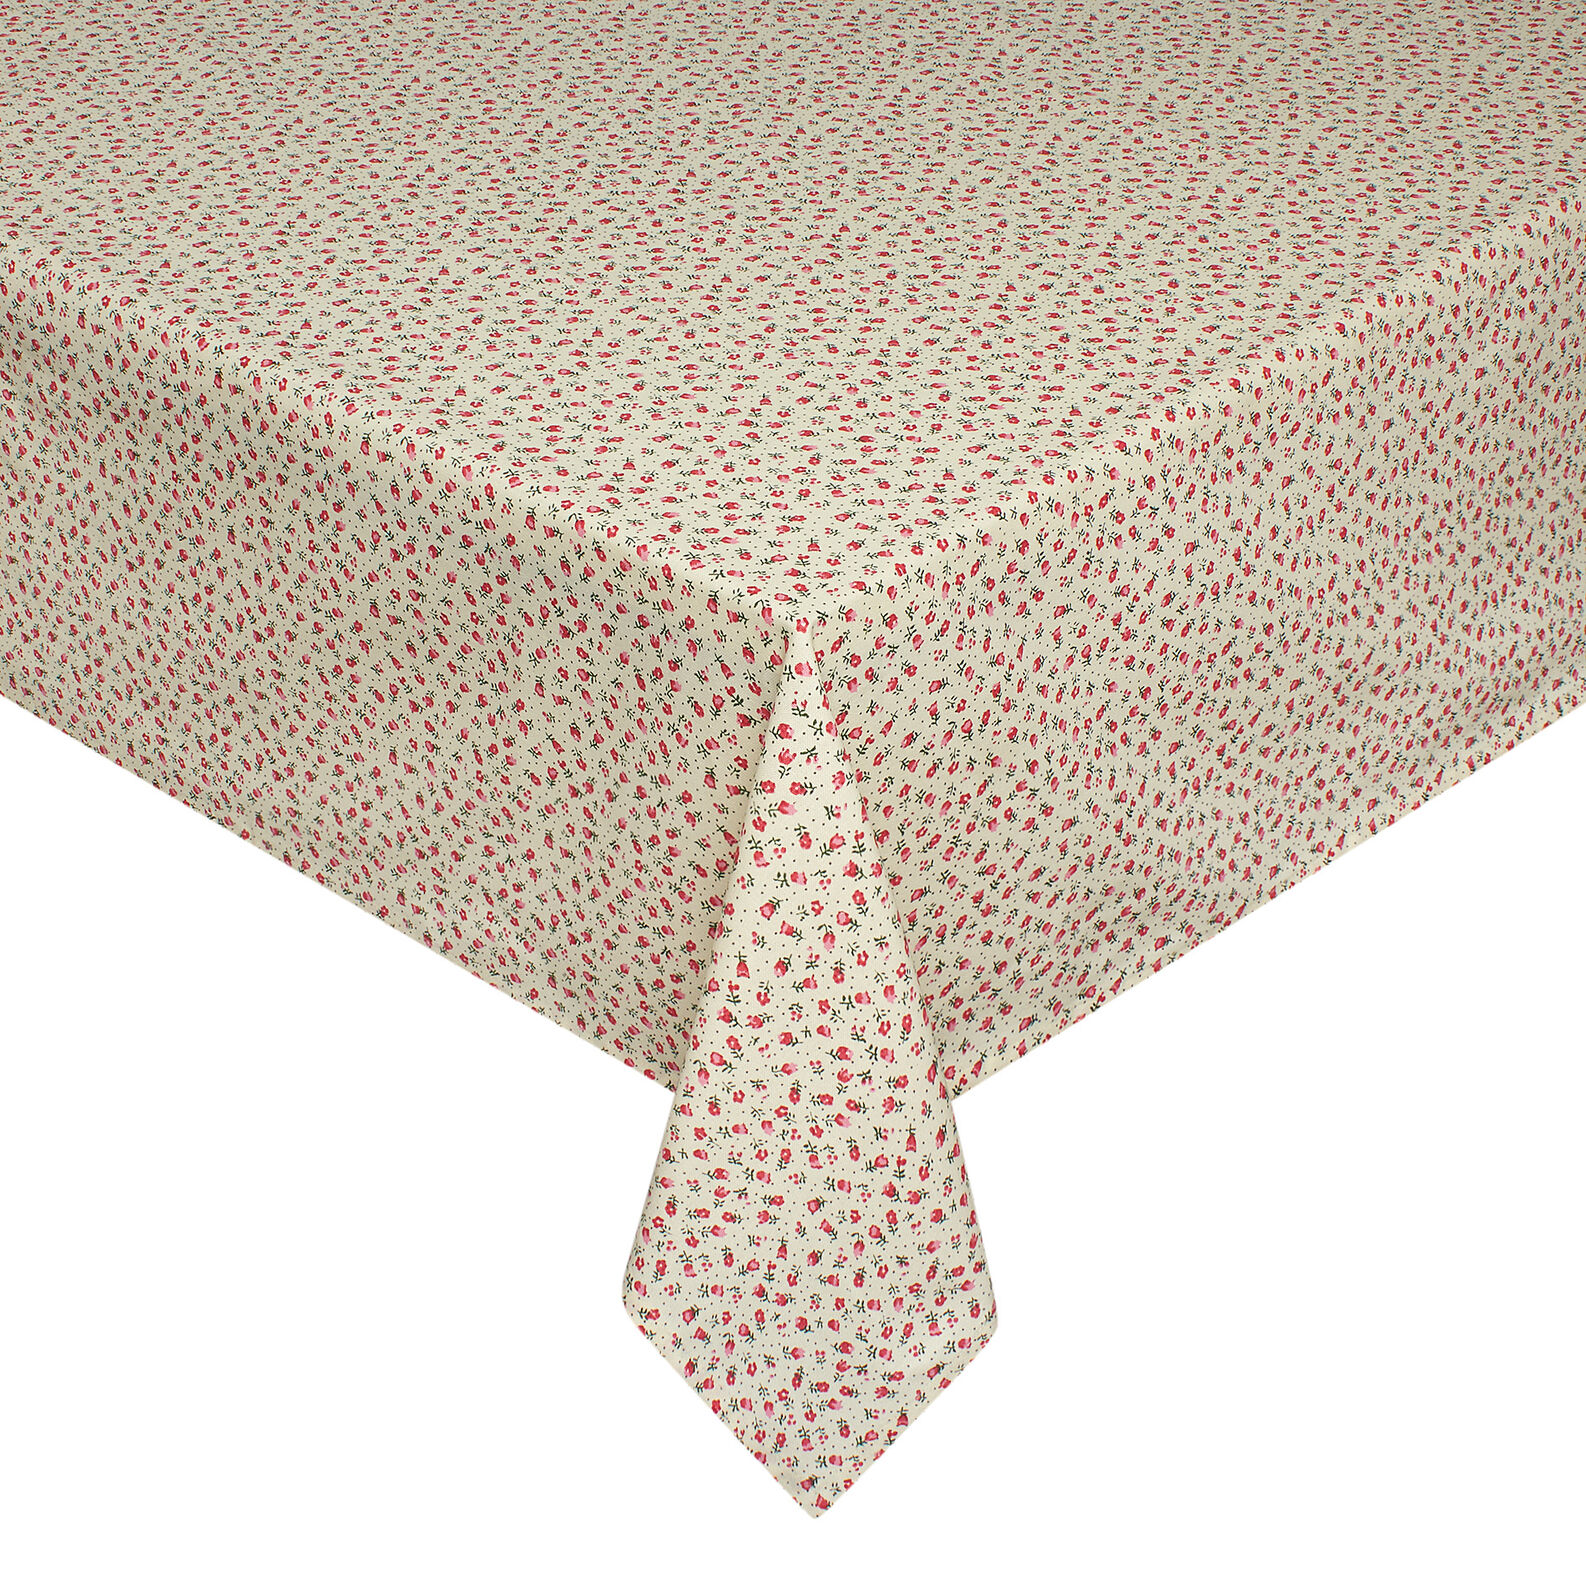 100% cotton tablecloth with tiny flower print